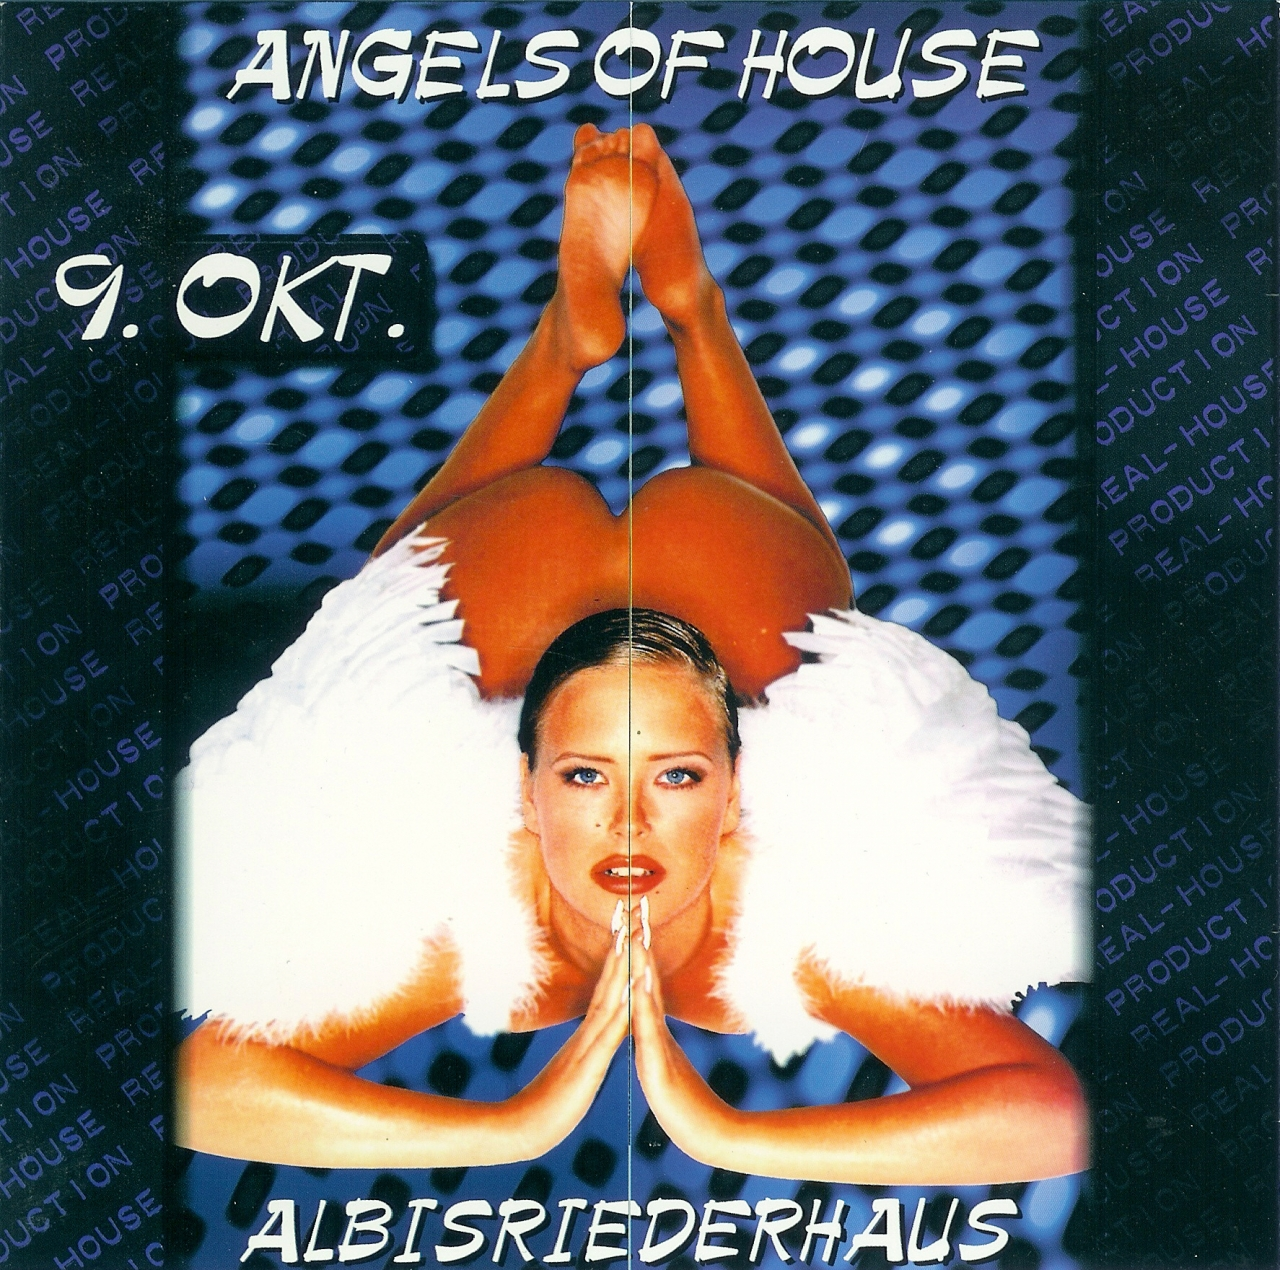 angels of house_9.10.1999